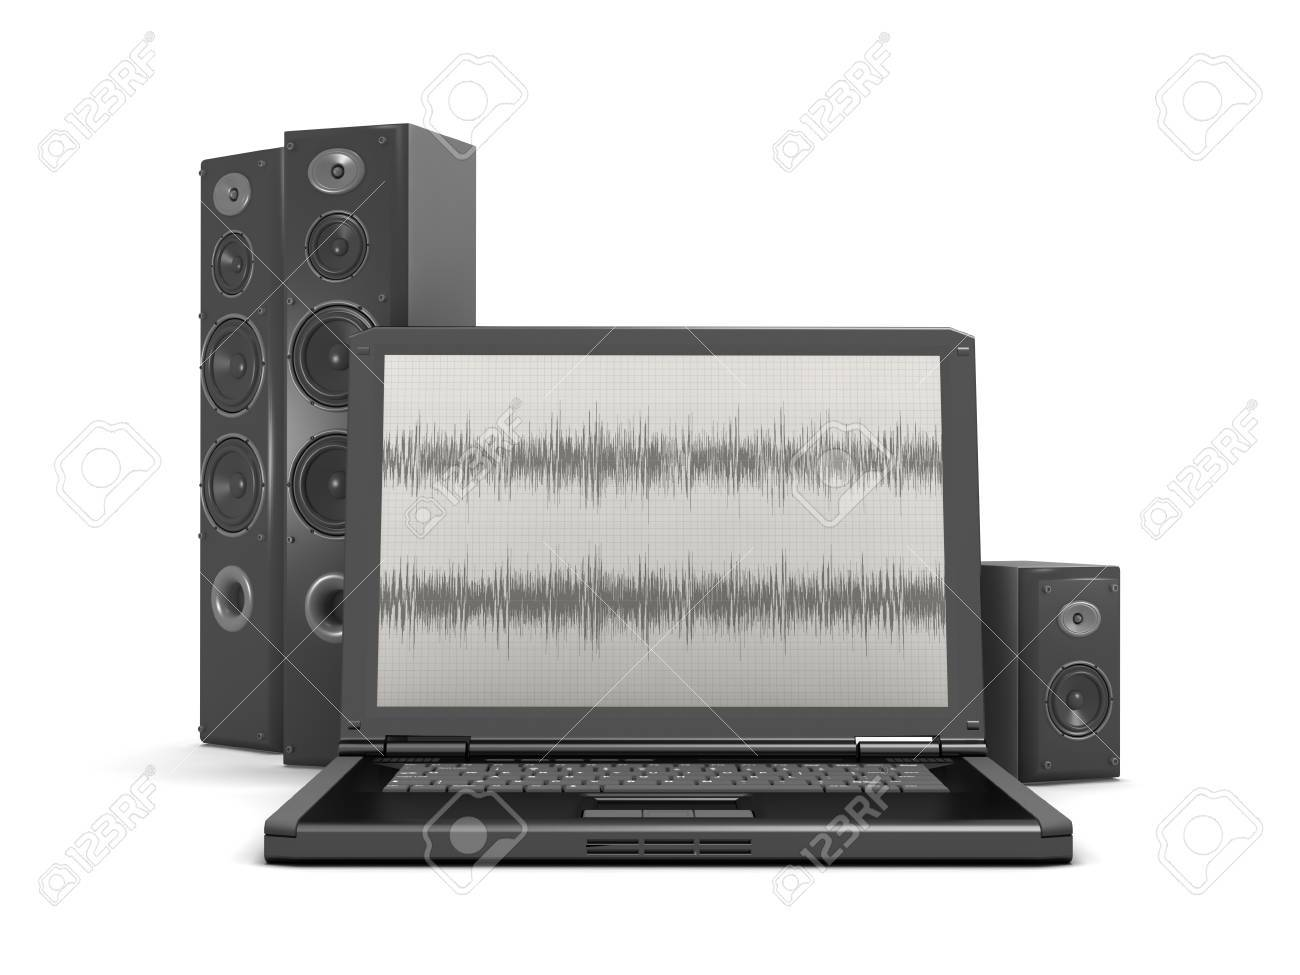 Laptop With Audio Diagram On Screen And Sound System Stock Photo ...